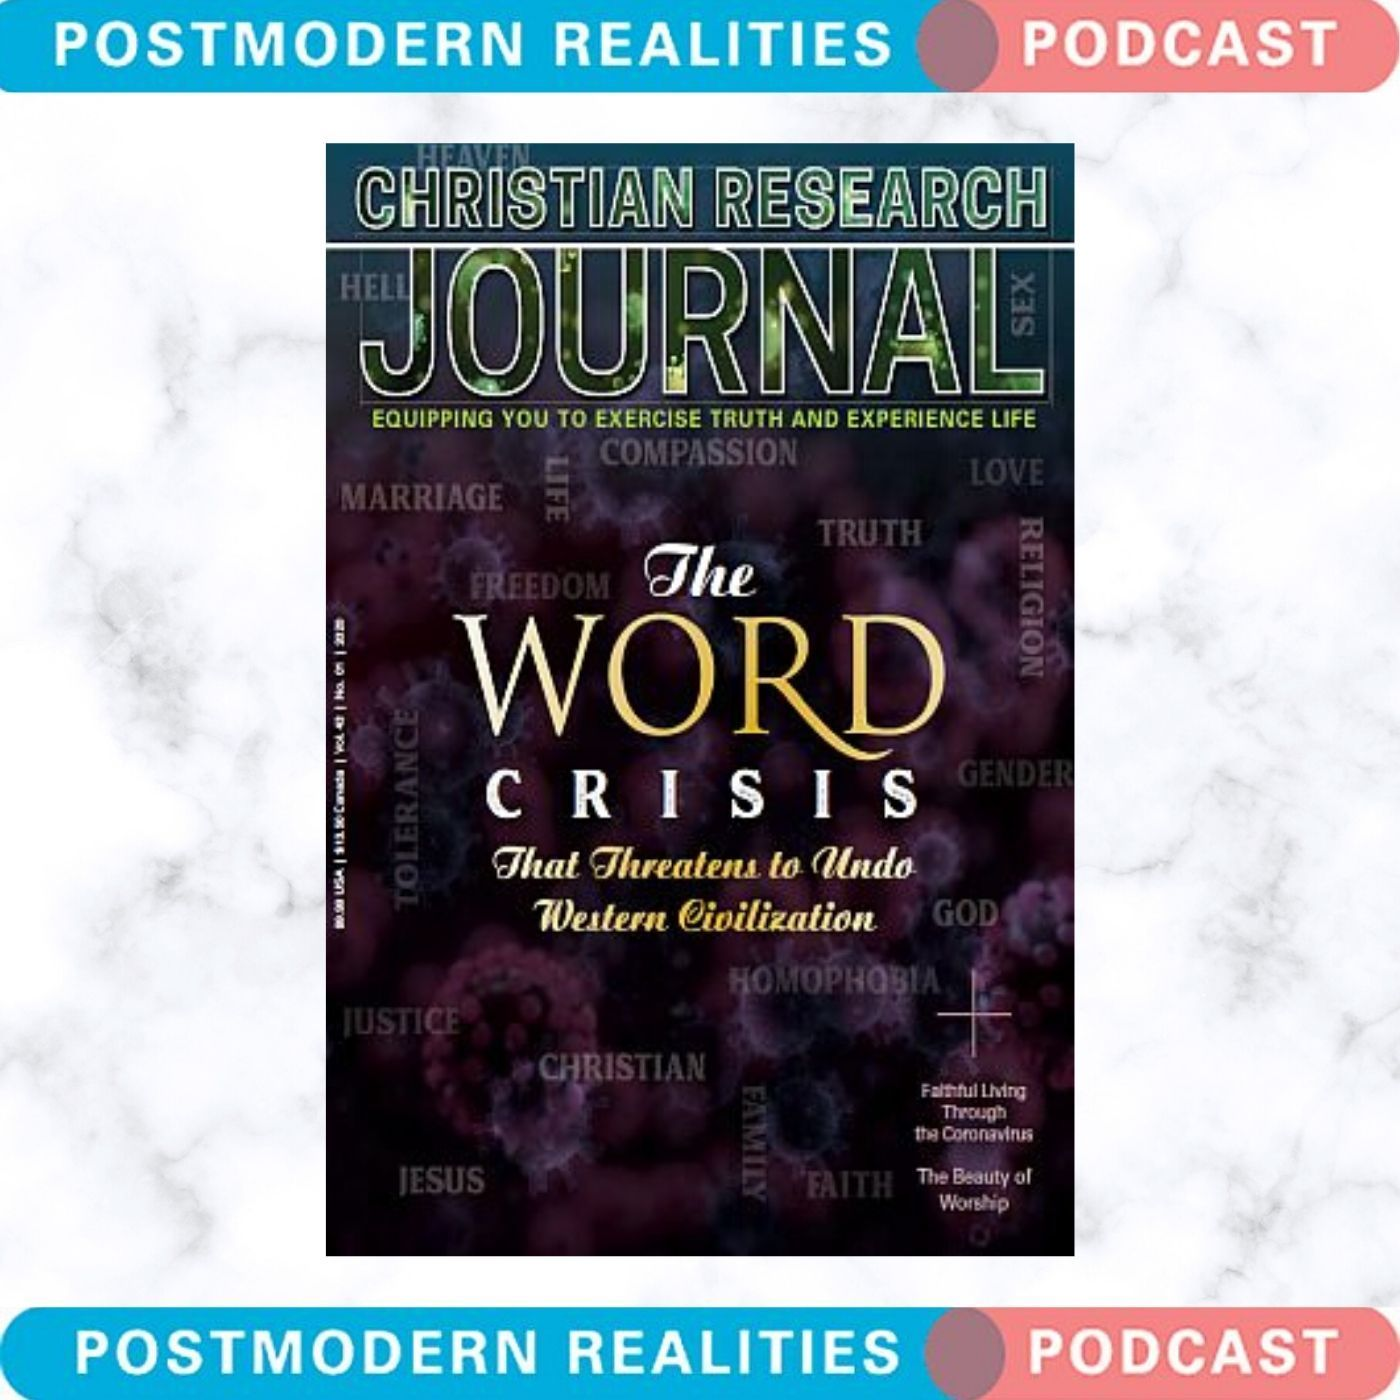 Postmodern Realities Episode 195 Seduced? The Crisis of Word and the Fragmentation of Civilization